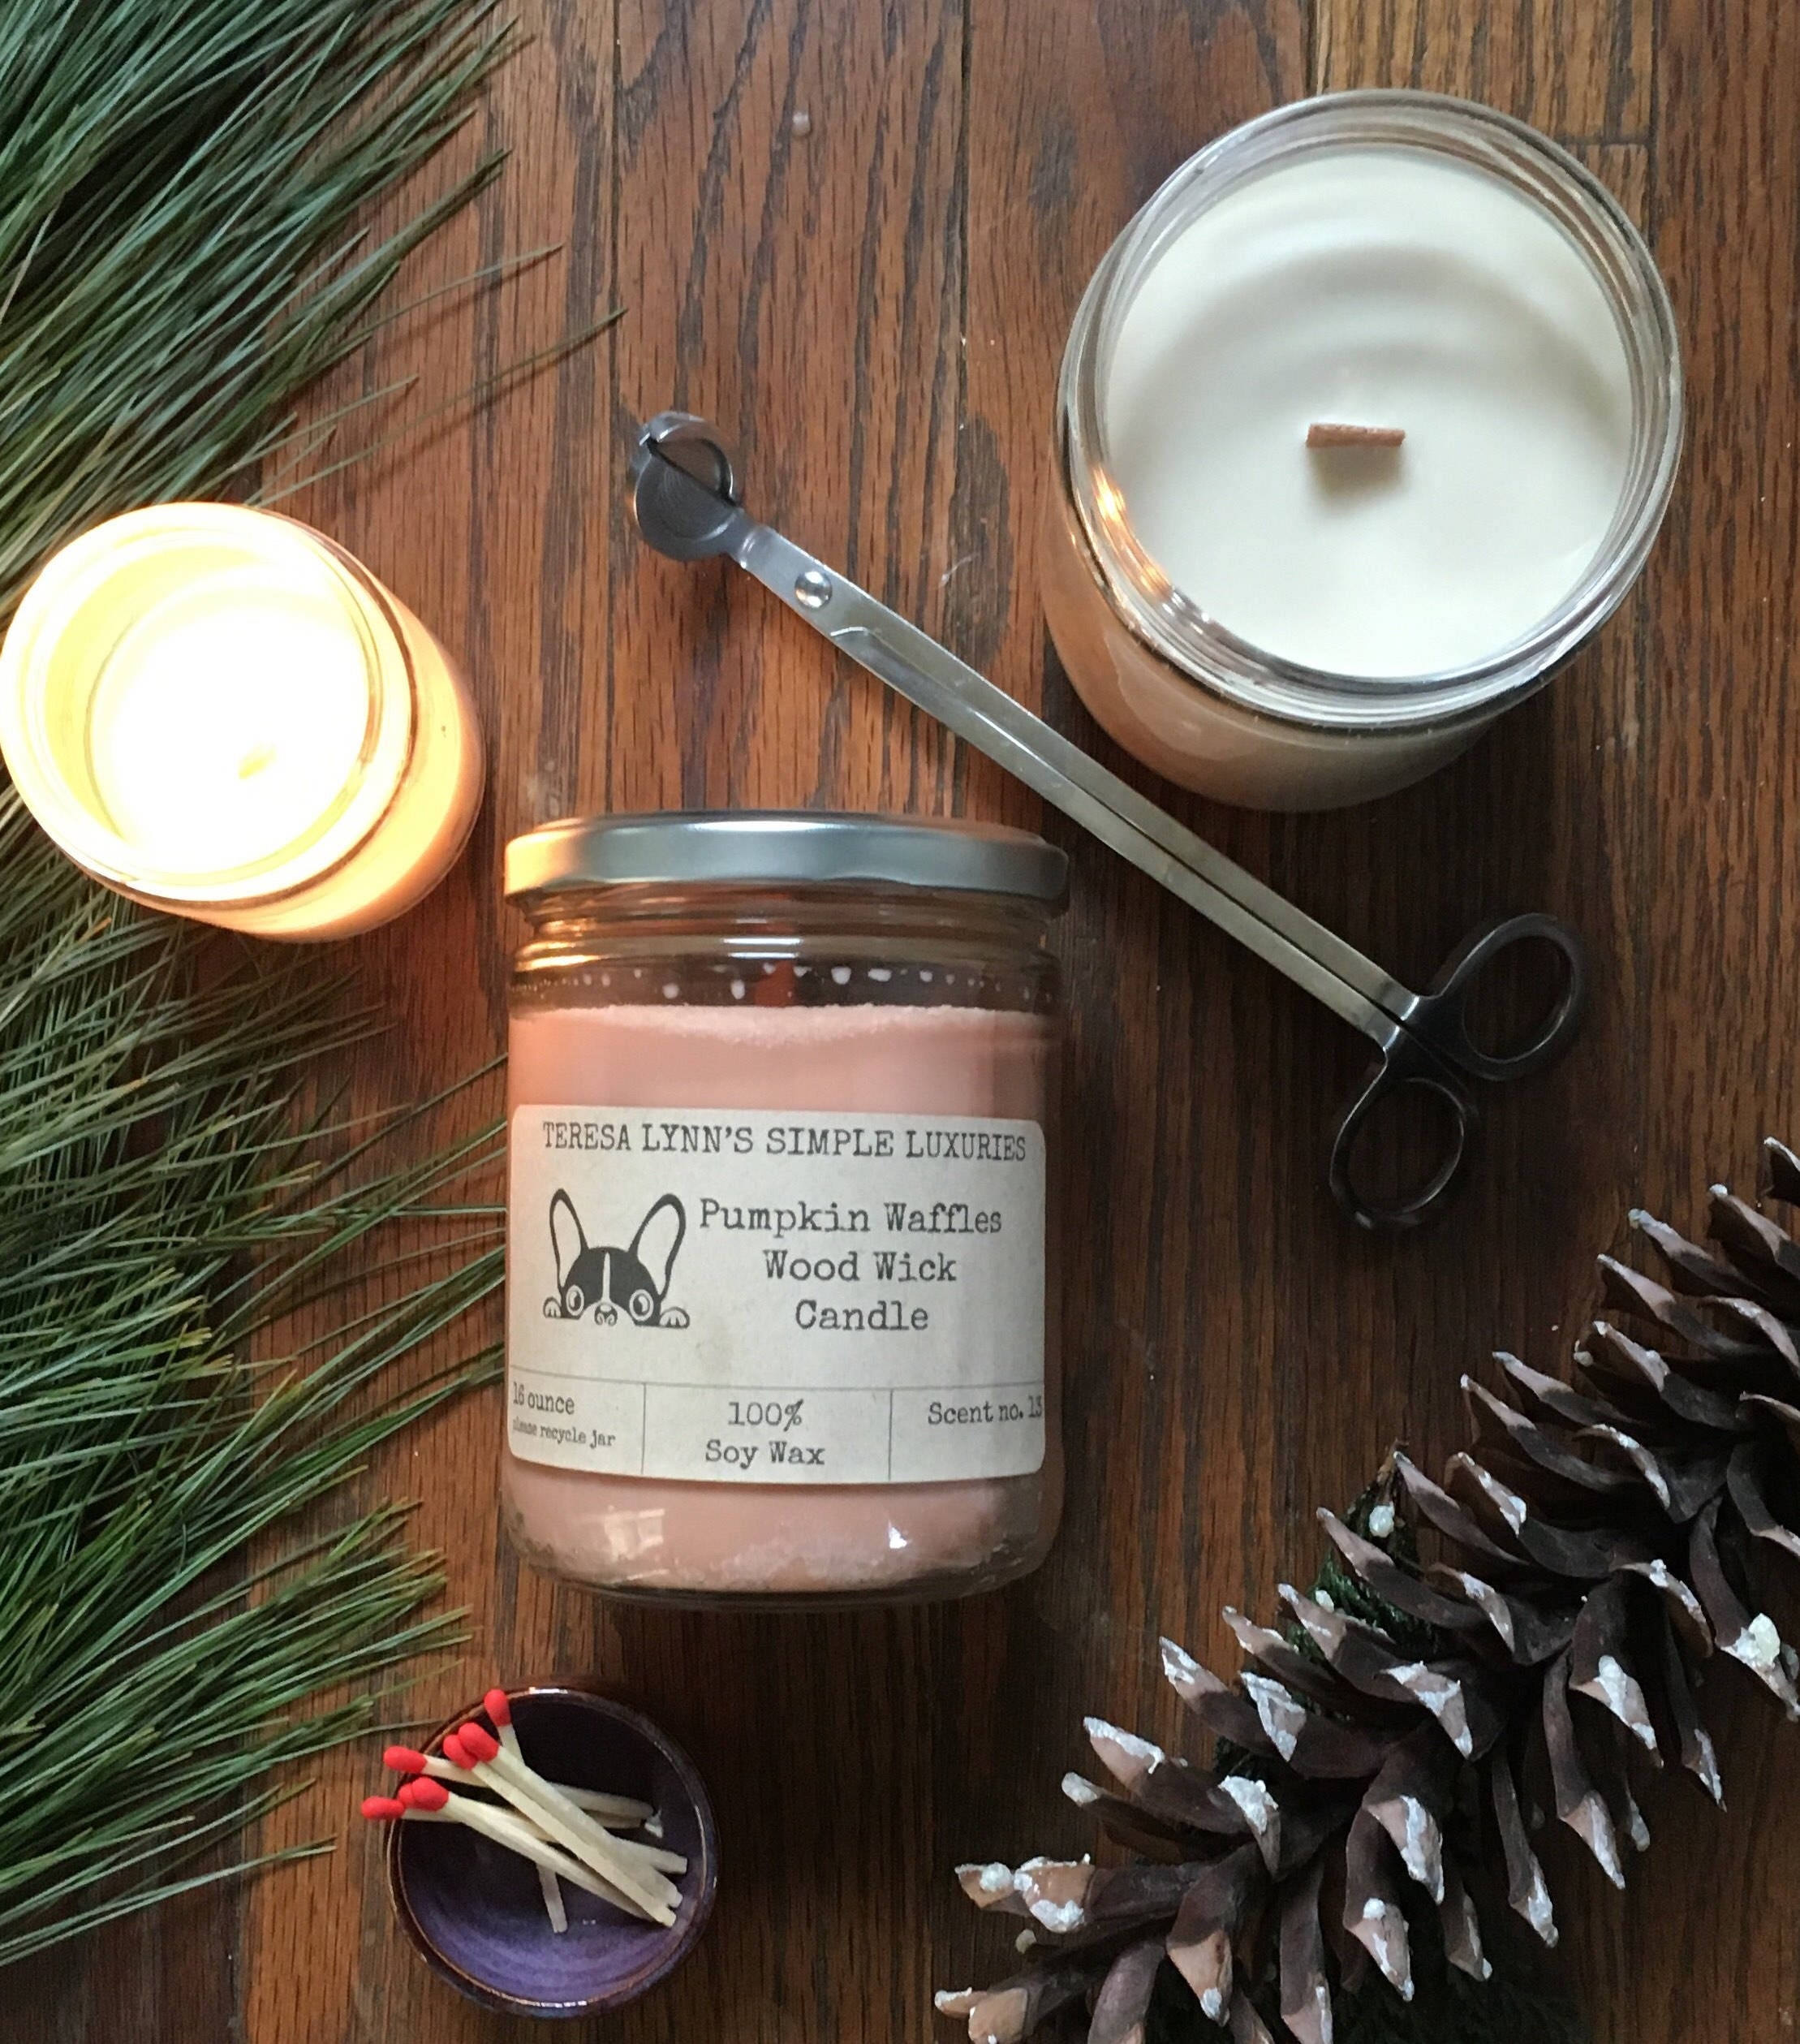 Pumpkin waffles wood wick candle pumpkin pie scented candle glass jar handmade long burning candle soy wax candle